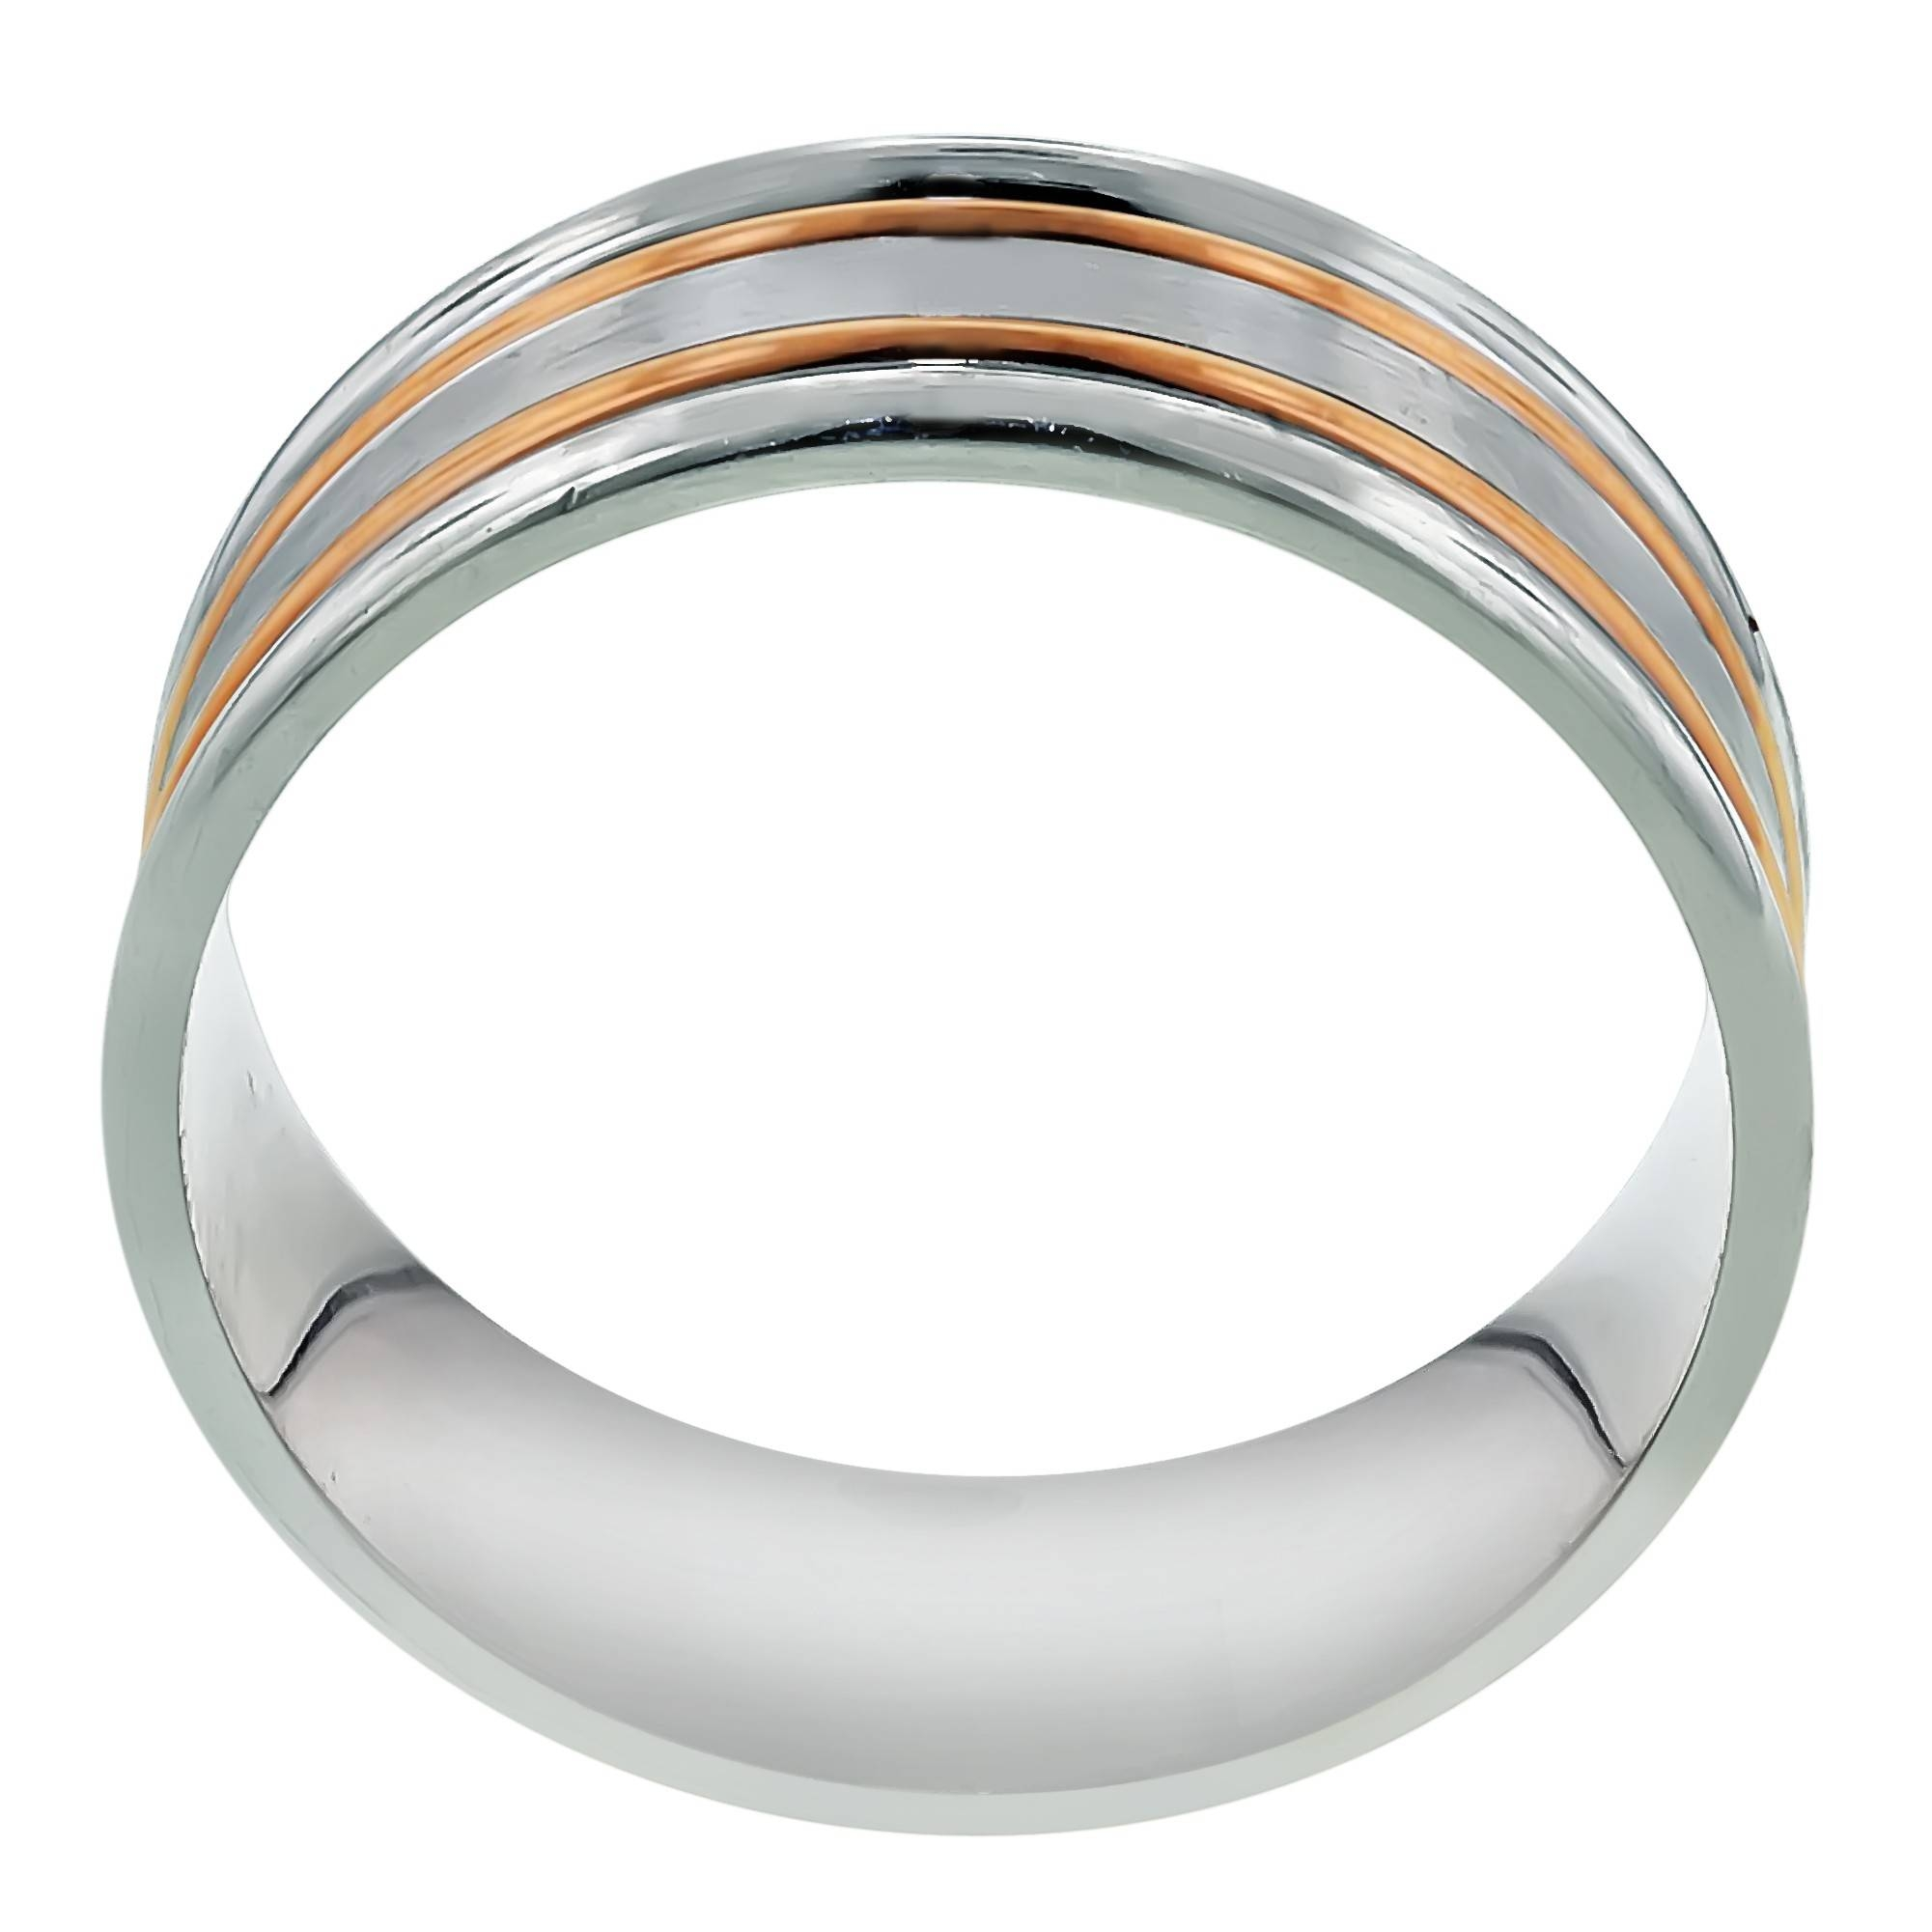 Dora Mens Wedding Band In 14Kt White And Rose Gold (5Mm) Intended For Dora Mens Wedding Bands (View 10 of 15)